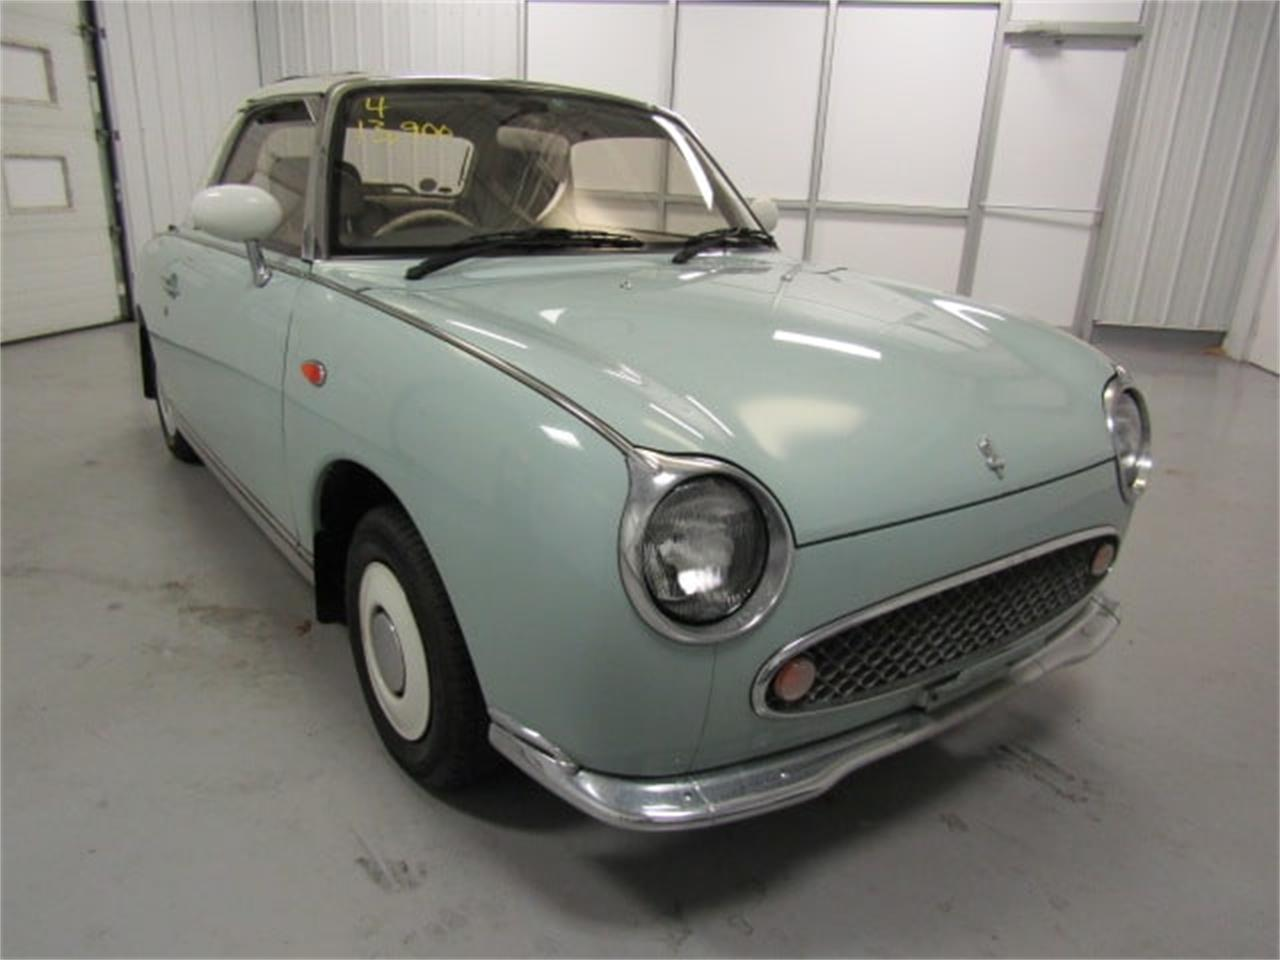 Large Picture of 1991 Nissan Figaro - $21,900.00 Offered by Duncan Imports & Classic Cars - JZ22